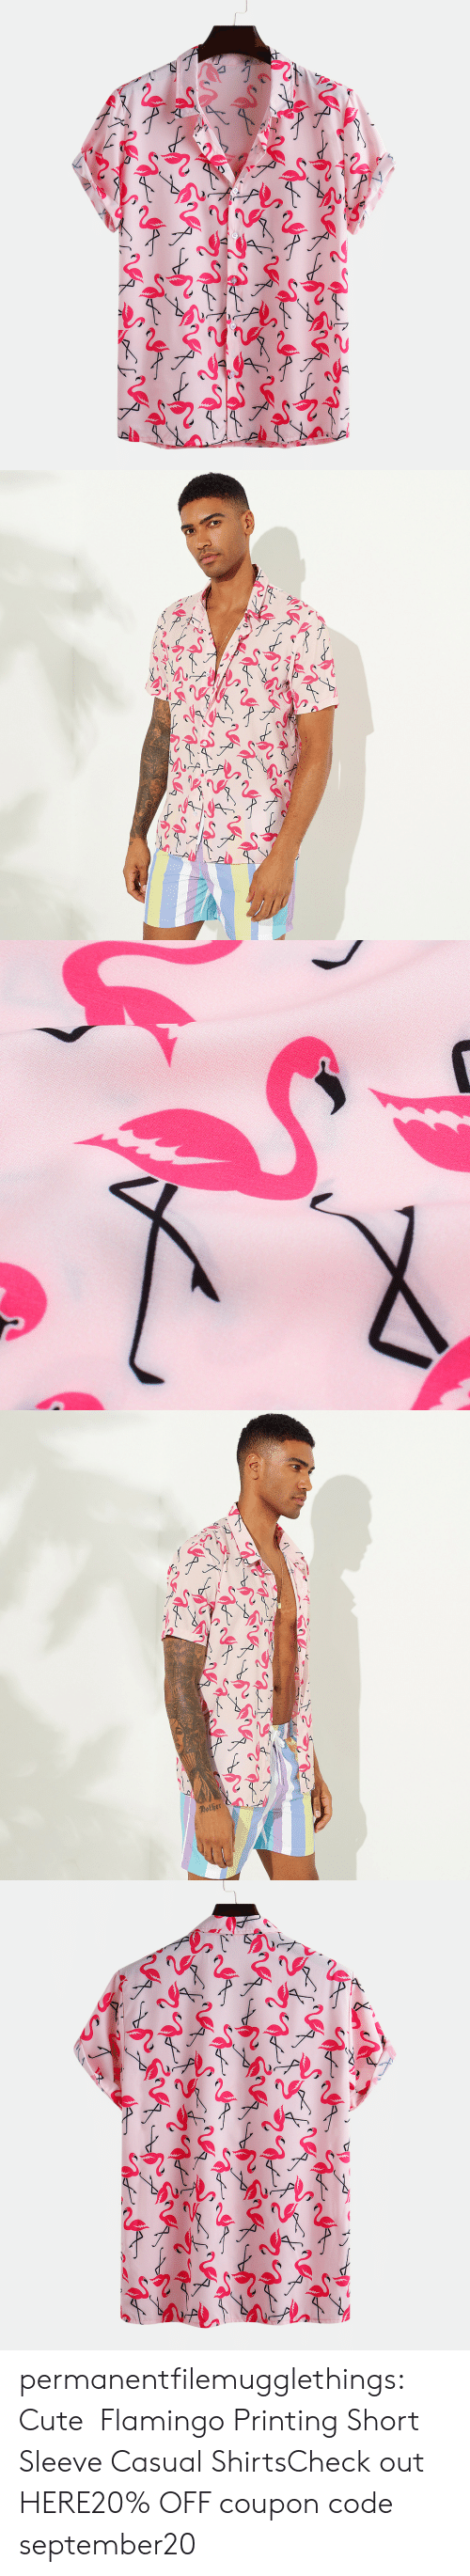 Cute, Tumblr, and Blog: other permanentfilemugglethings:  Cute Flamingo Printing Short Sleeve Casual ShirtsCheck out HERE20% OFF coupon code:september20